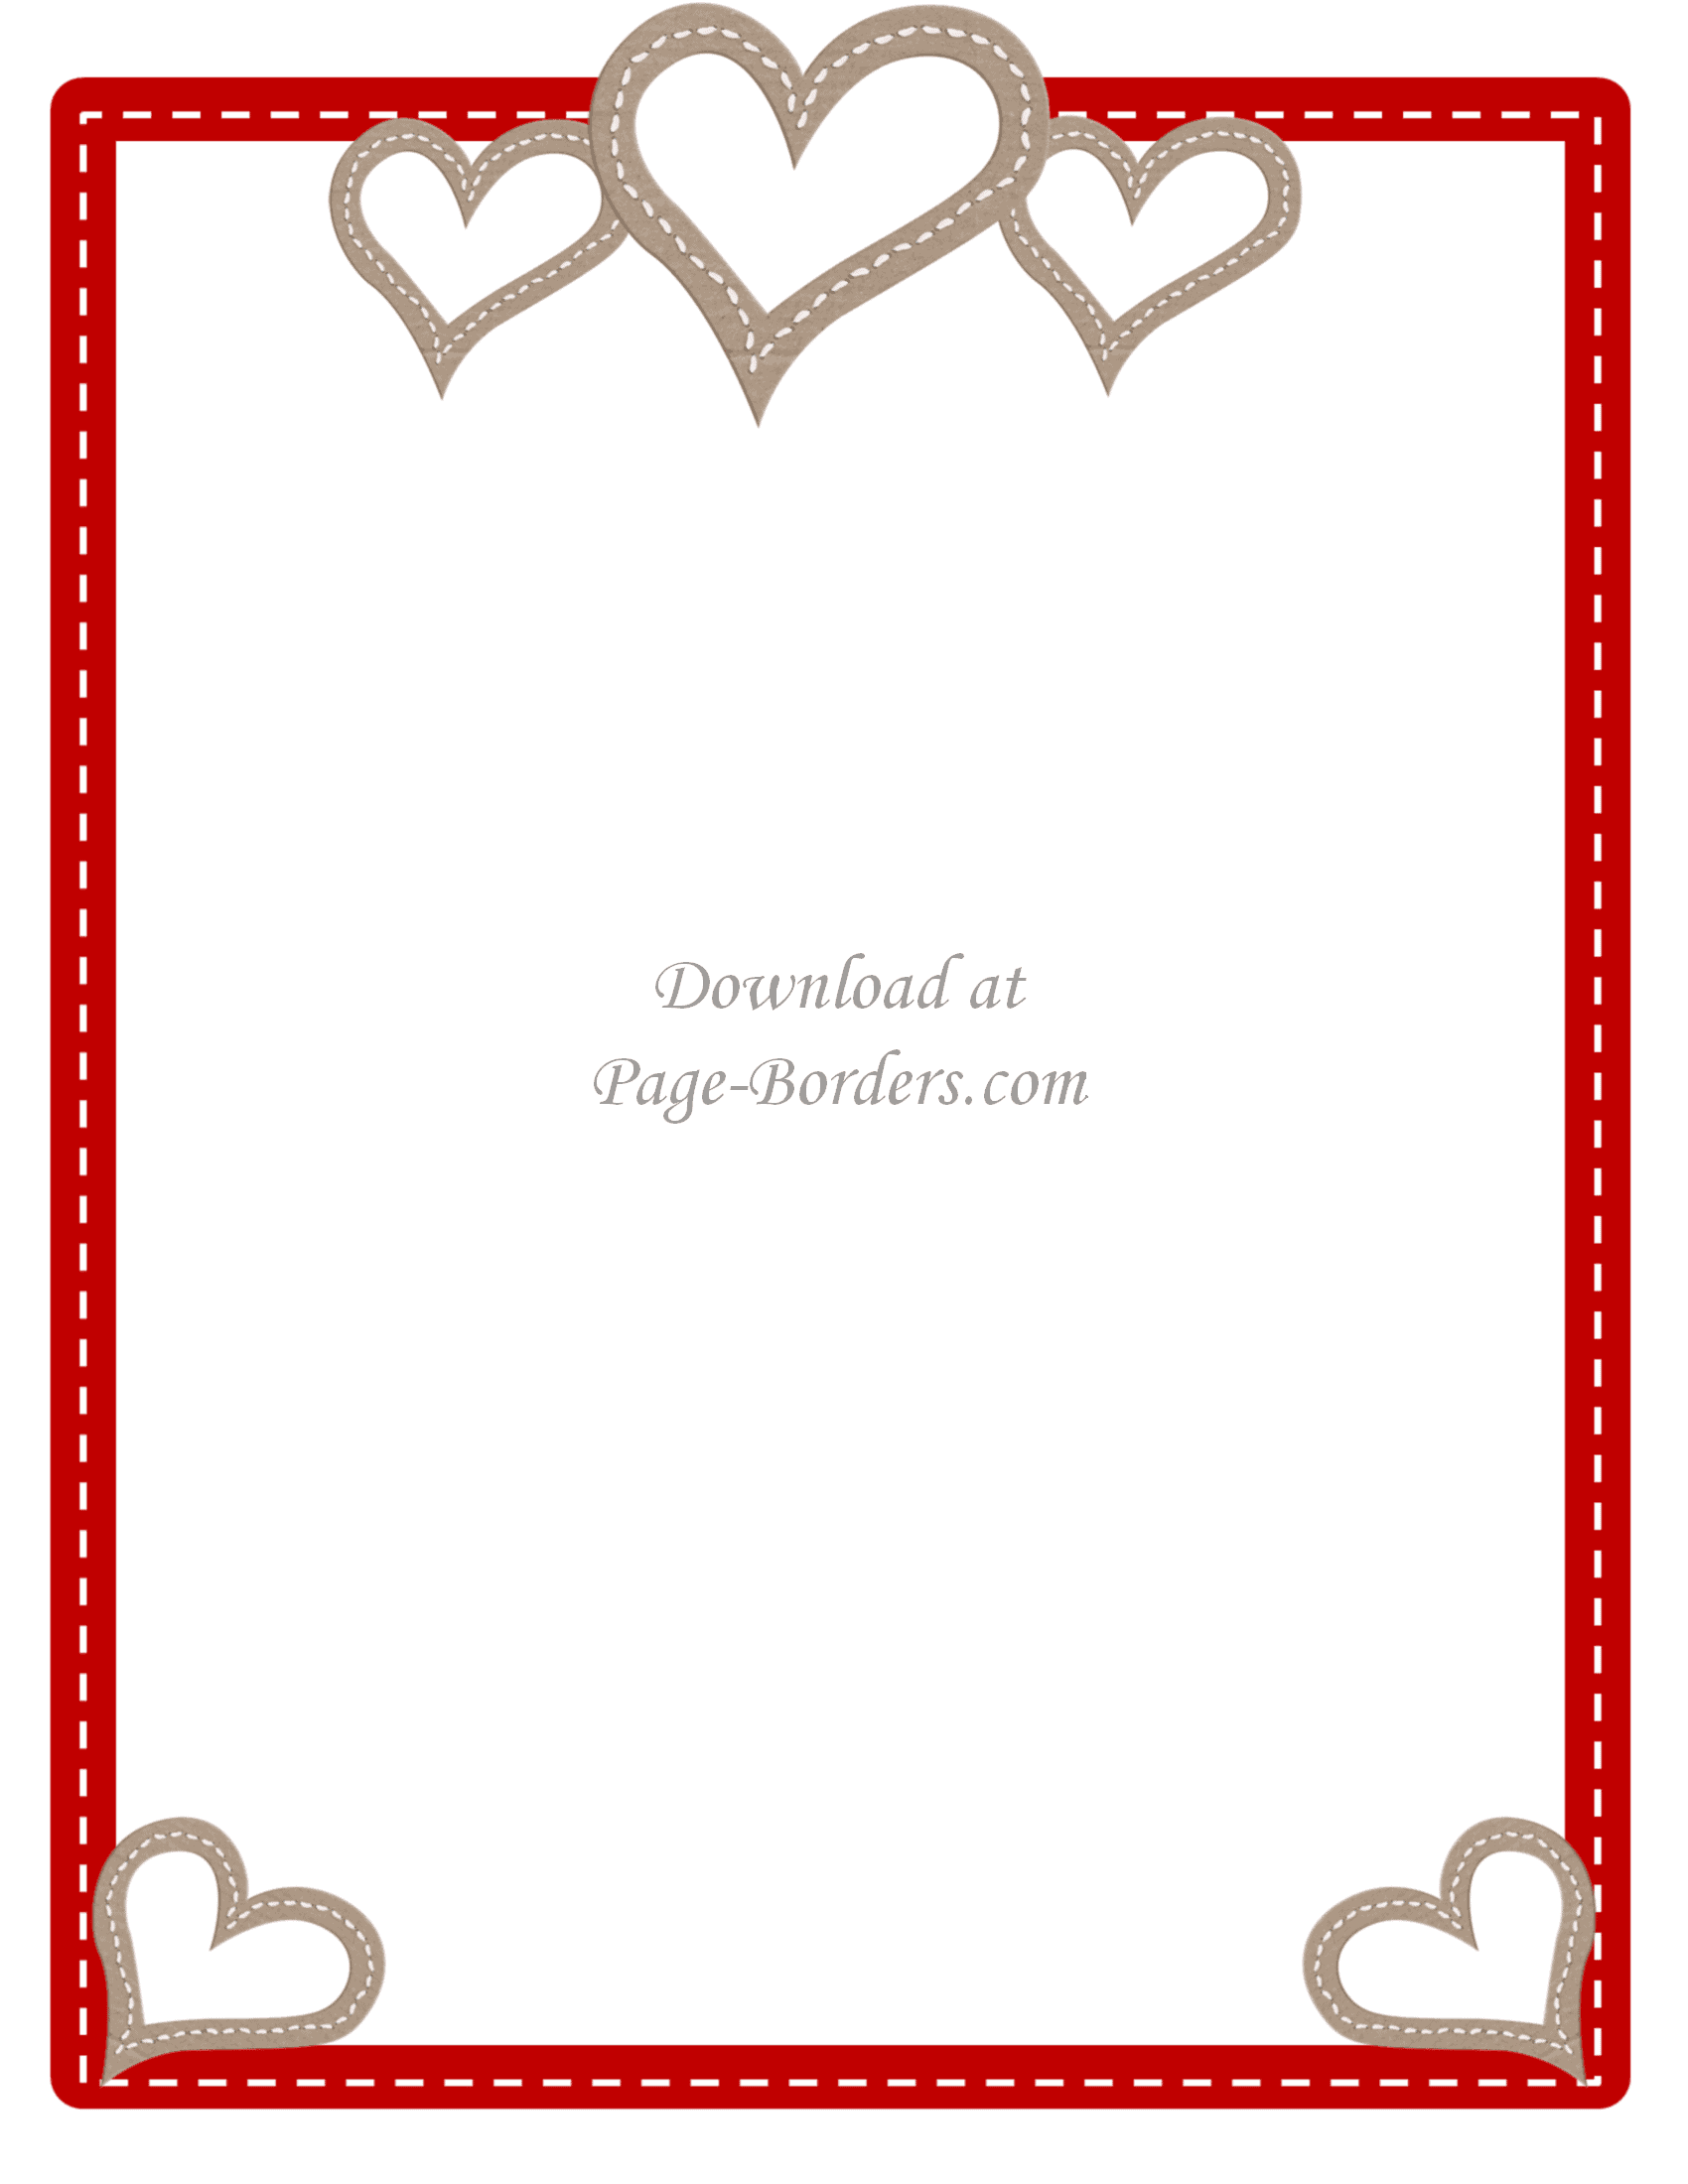 Heart border page borders amp backgrounds